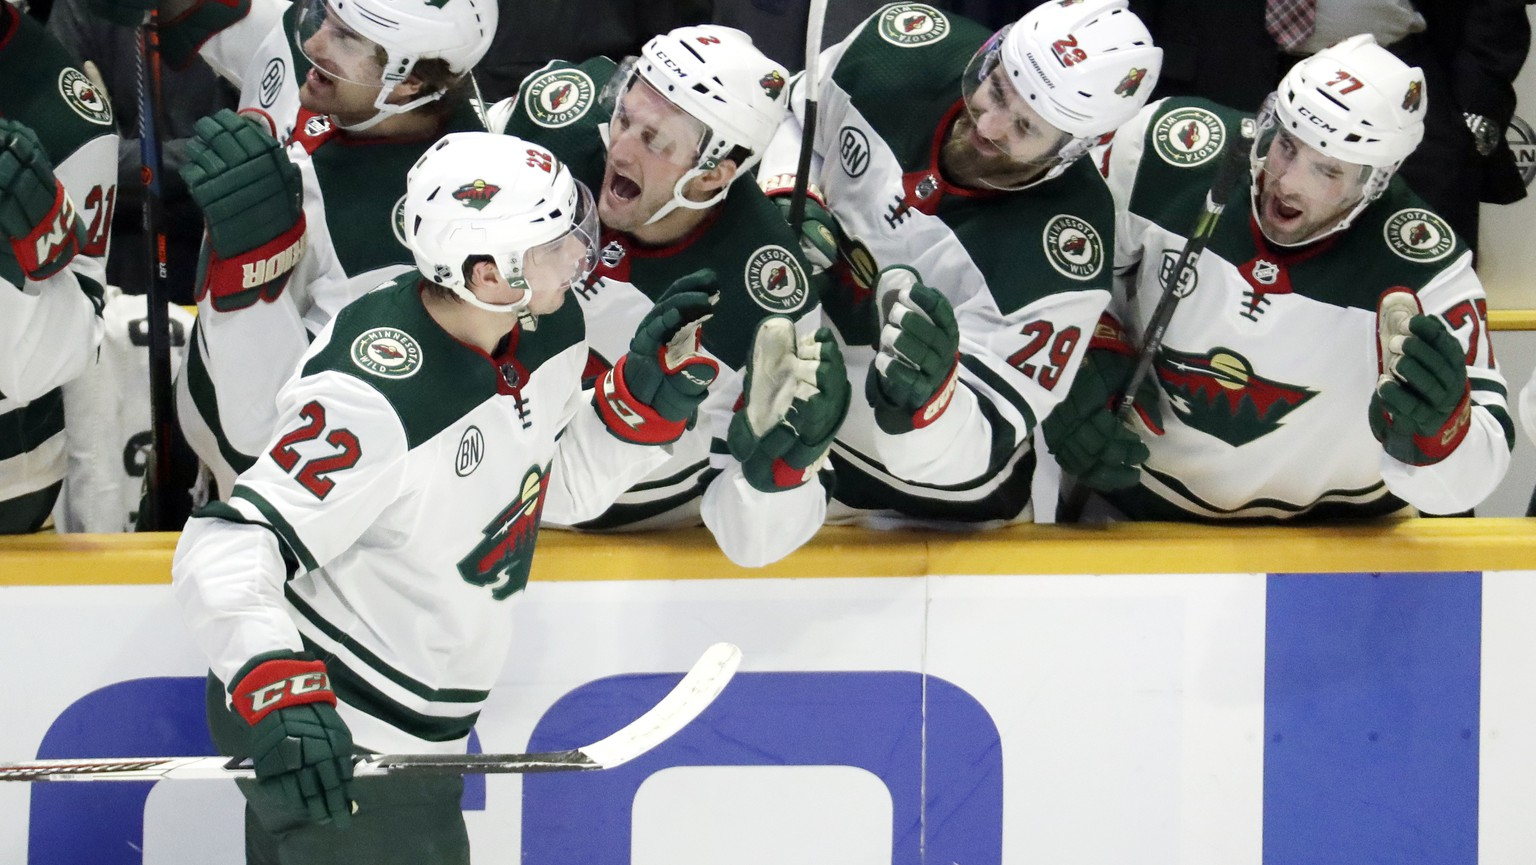 Minnesota Wild right wing Kevin Fiala (22), of Switzerland, is congratulated after scoring his second goal of the game against the Nashville Predators in the third period of an NHL hockey game Tuesday, March 5, 2019, in Nashville, Tenn. (AP Photo/Mark Humphrey)